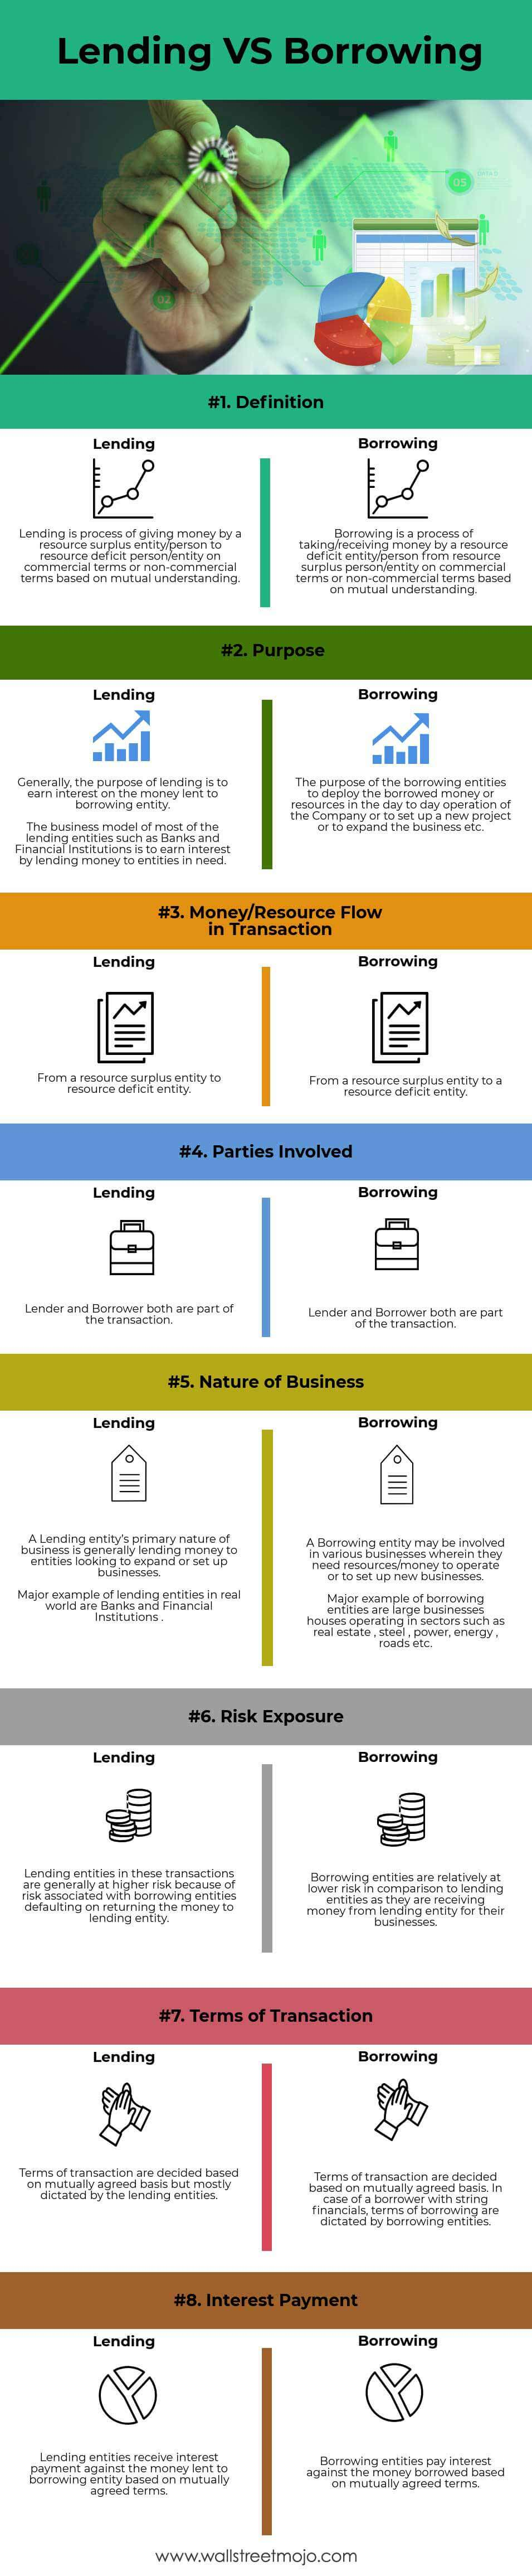 Lending-VS-Borrowing-info